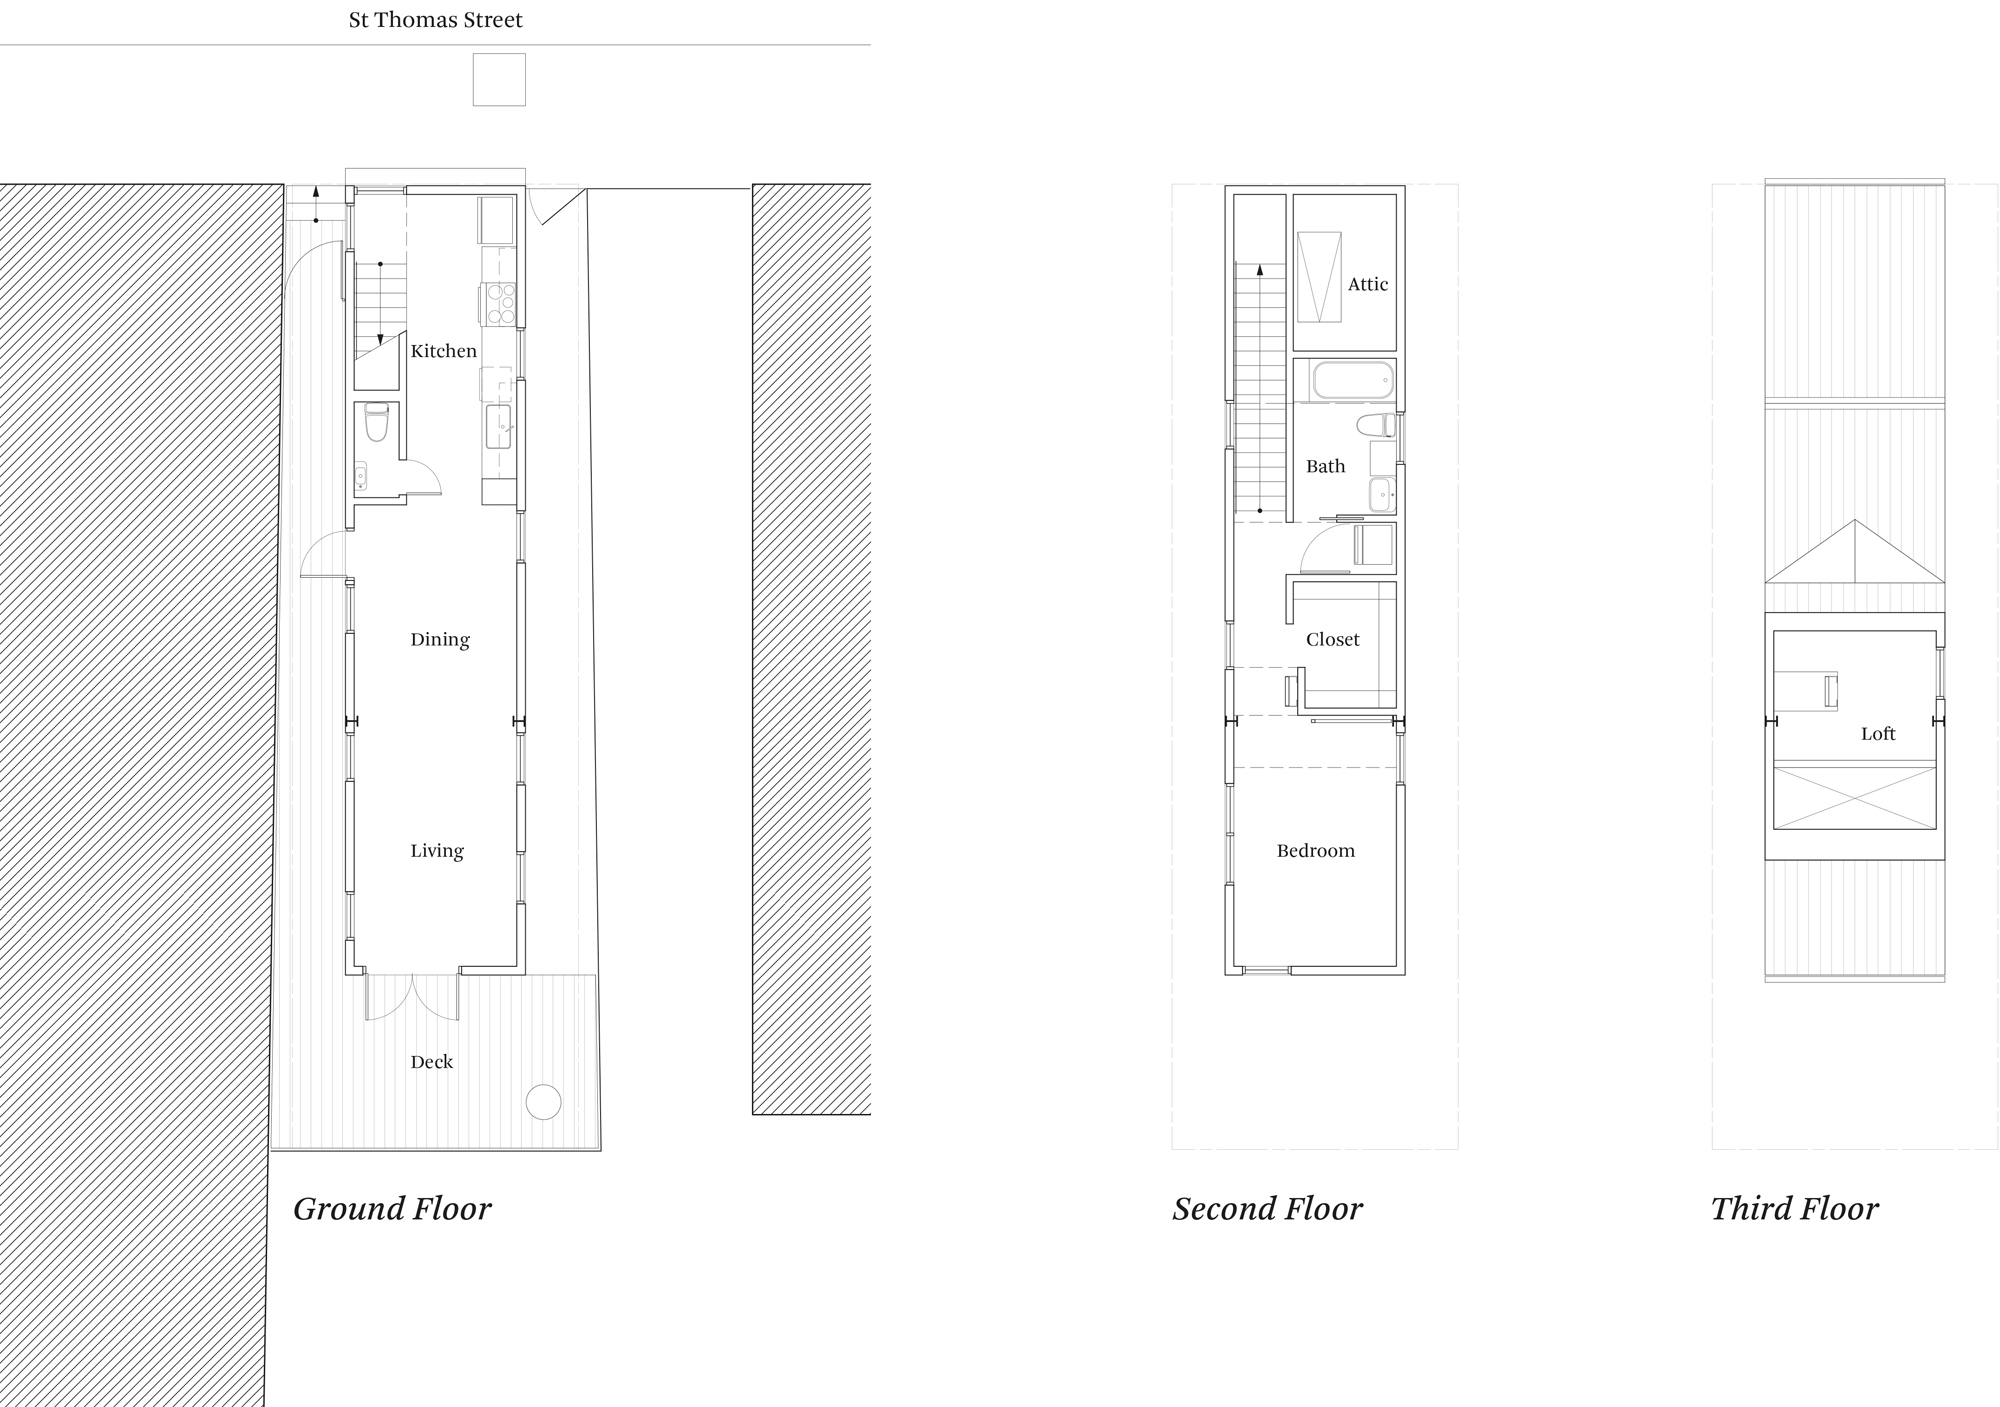 Floor plans of the first Starter Home* by OJT (Office of Jonathan Tate)